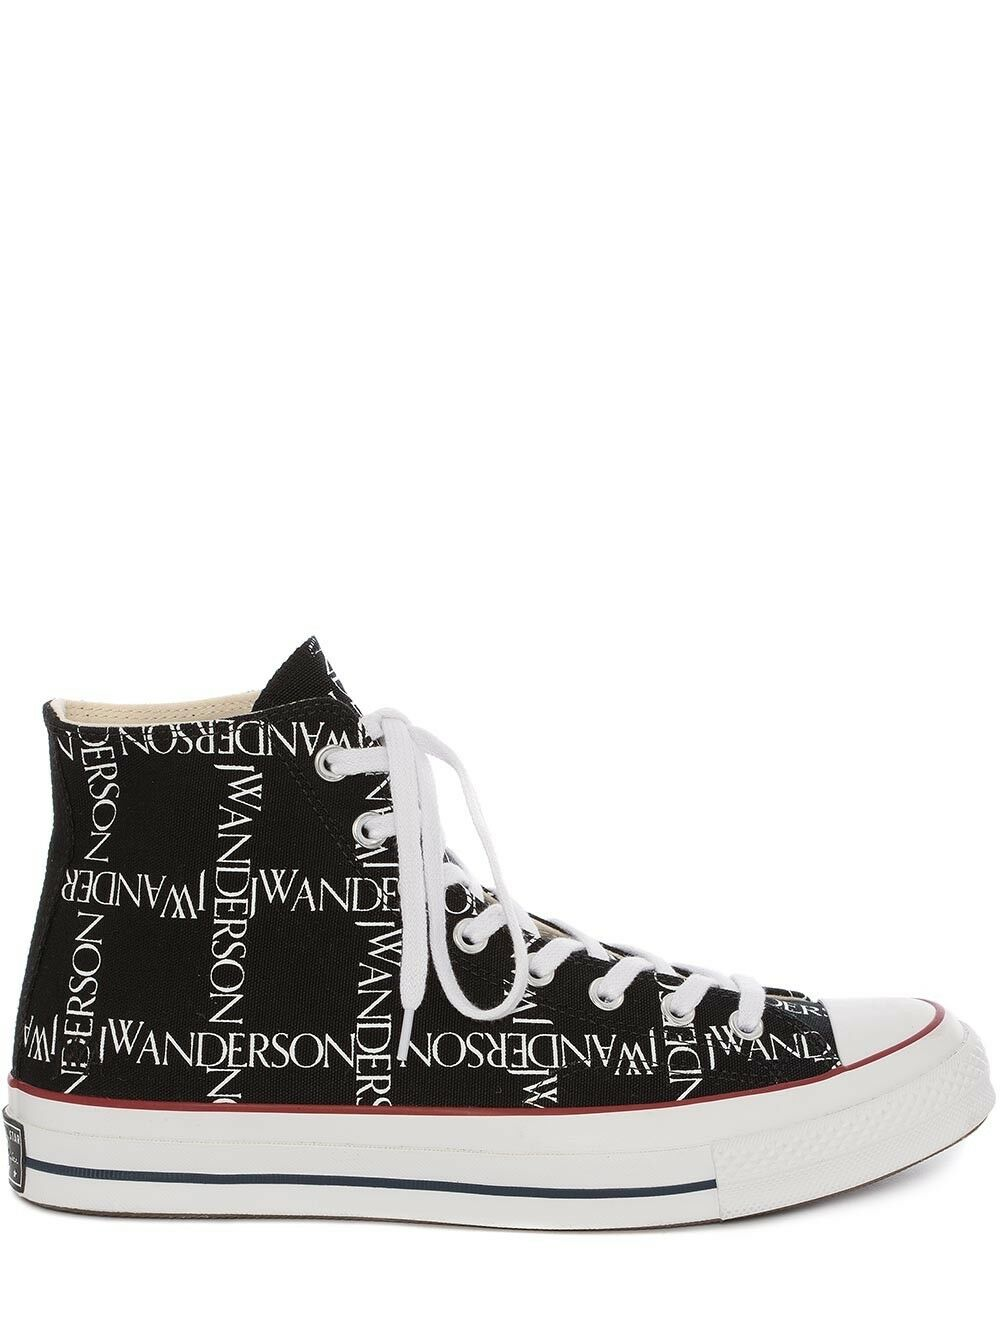 Converse x JW Anderson Chuck Taylor All Star Grid Hi Top Black/White Mens Sizes